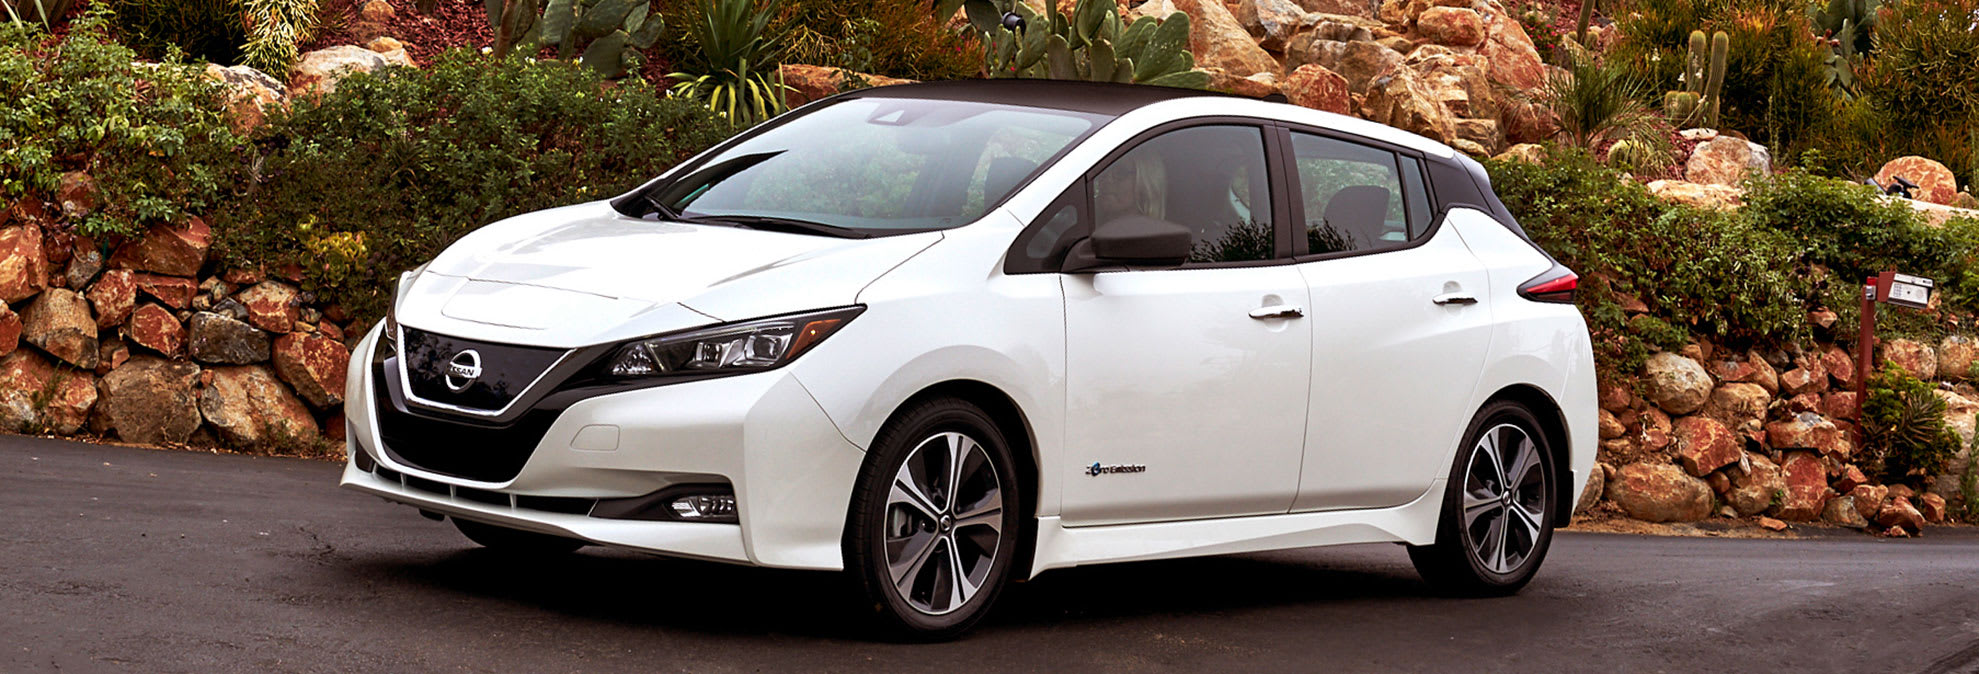 we get a charge driving the 2018 nissan leaf - consumer reports